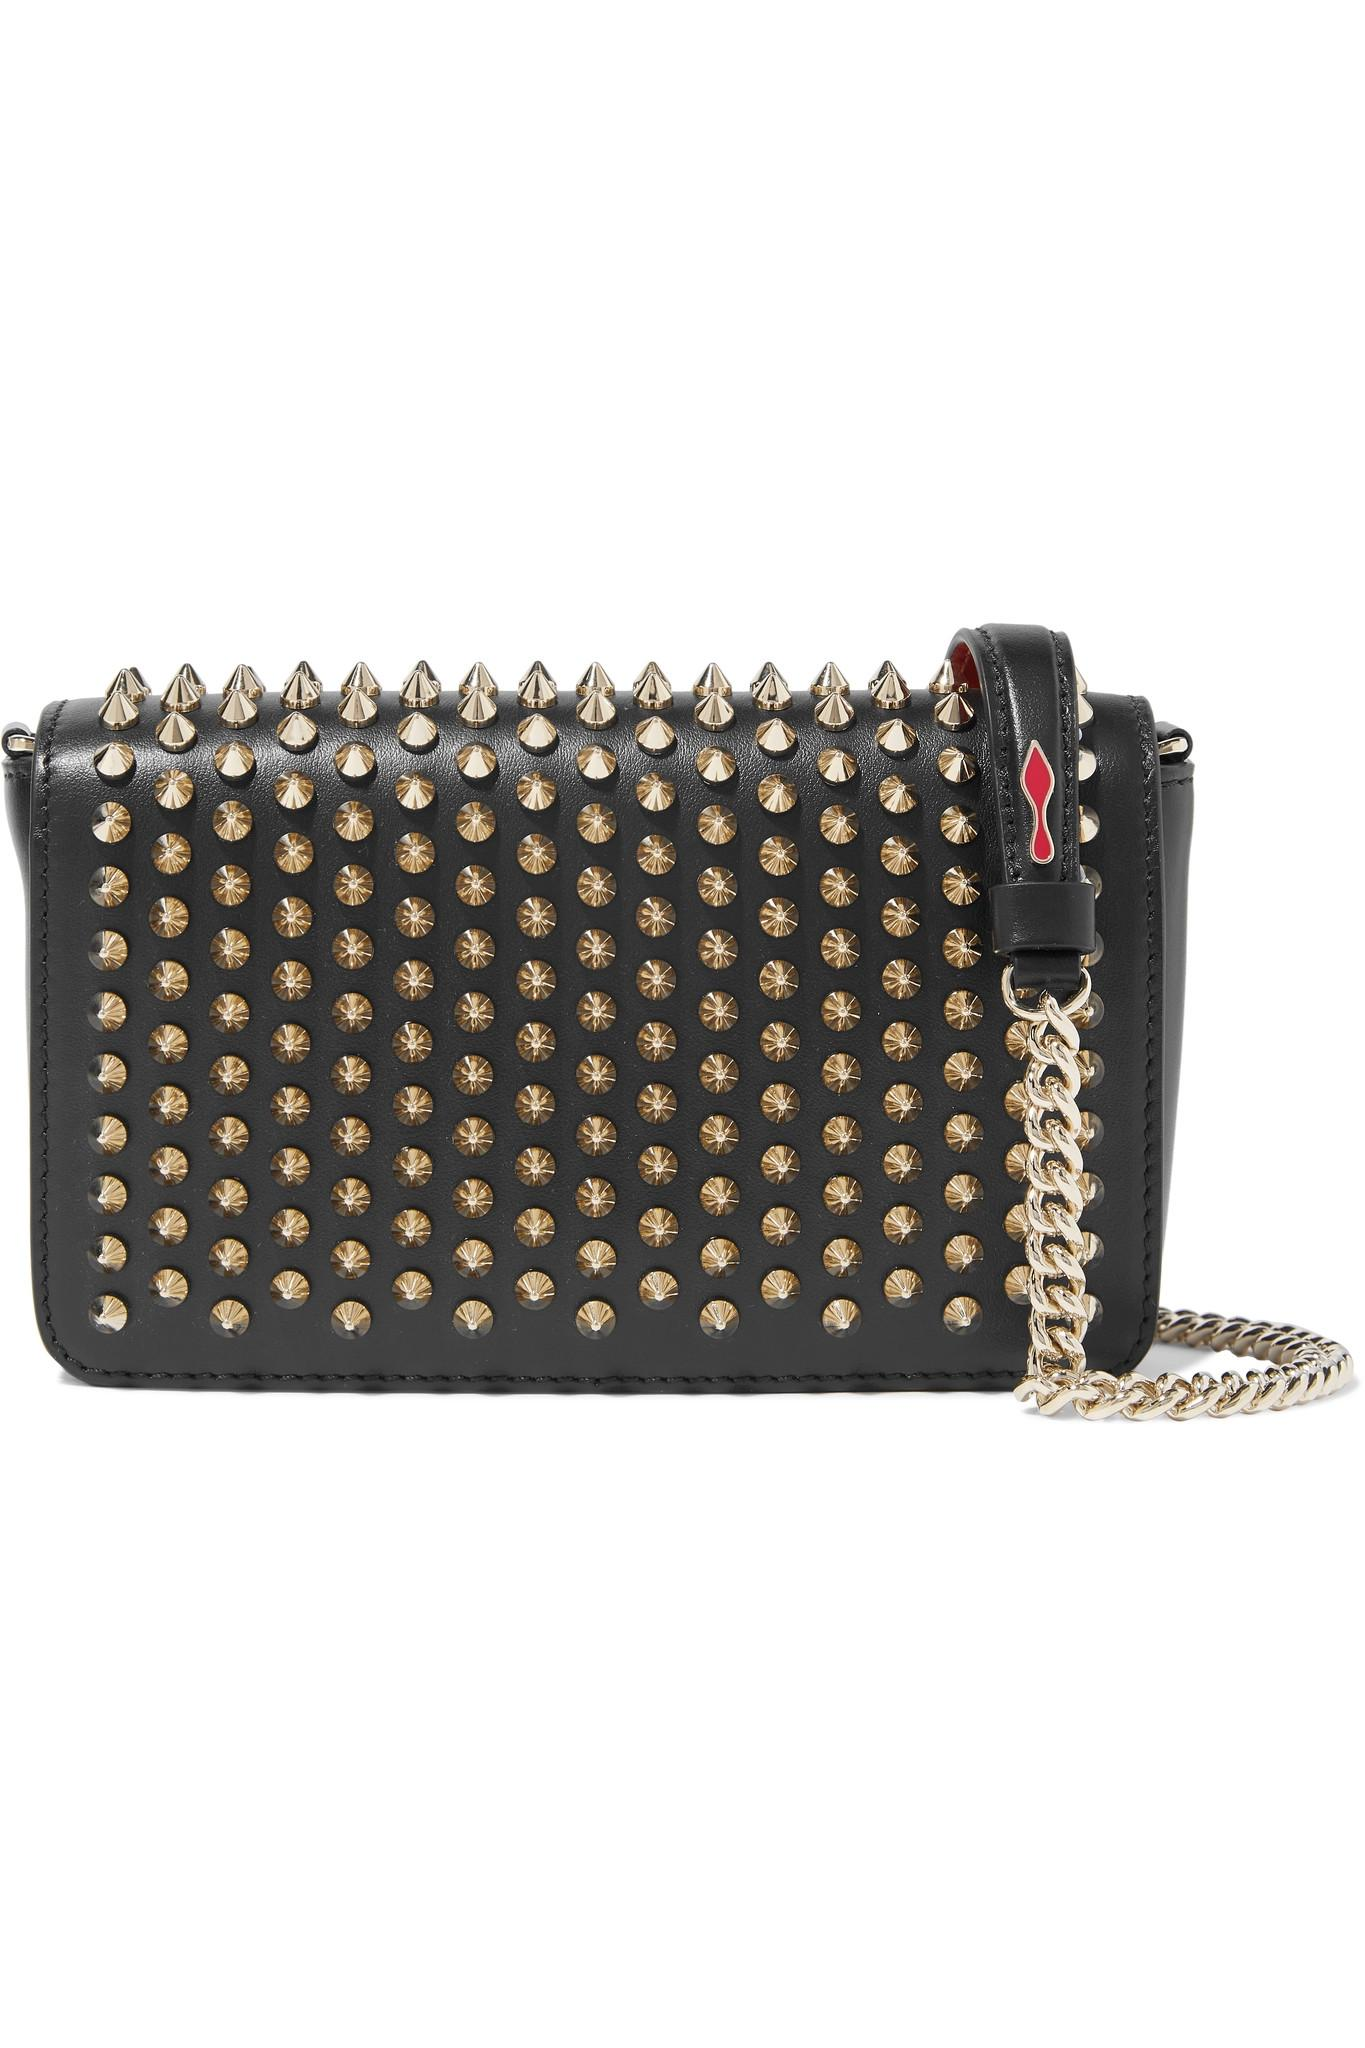 d78027d44f7 Christian Louboutin. Women s Black Zoompouch Spiked Leather Shoulder Bag